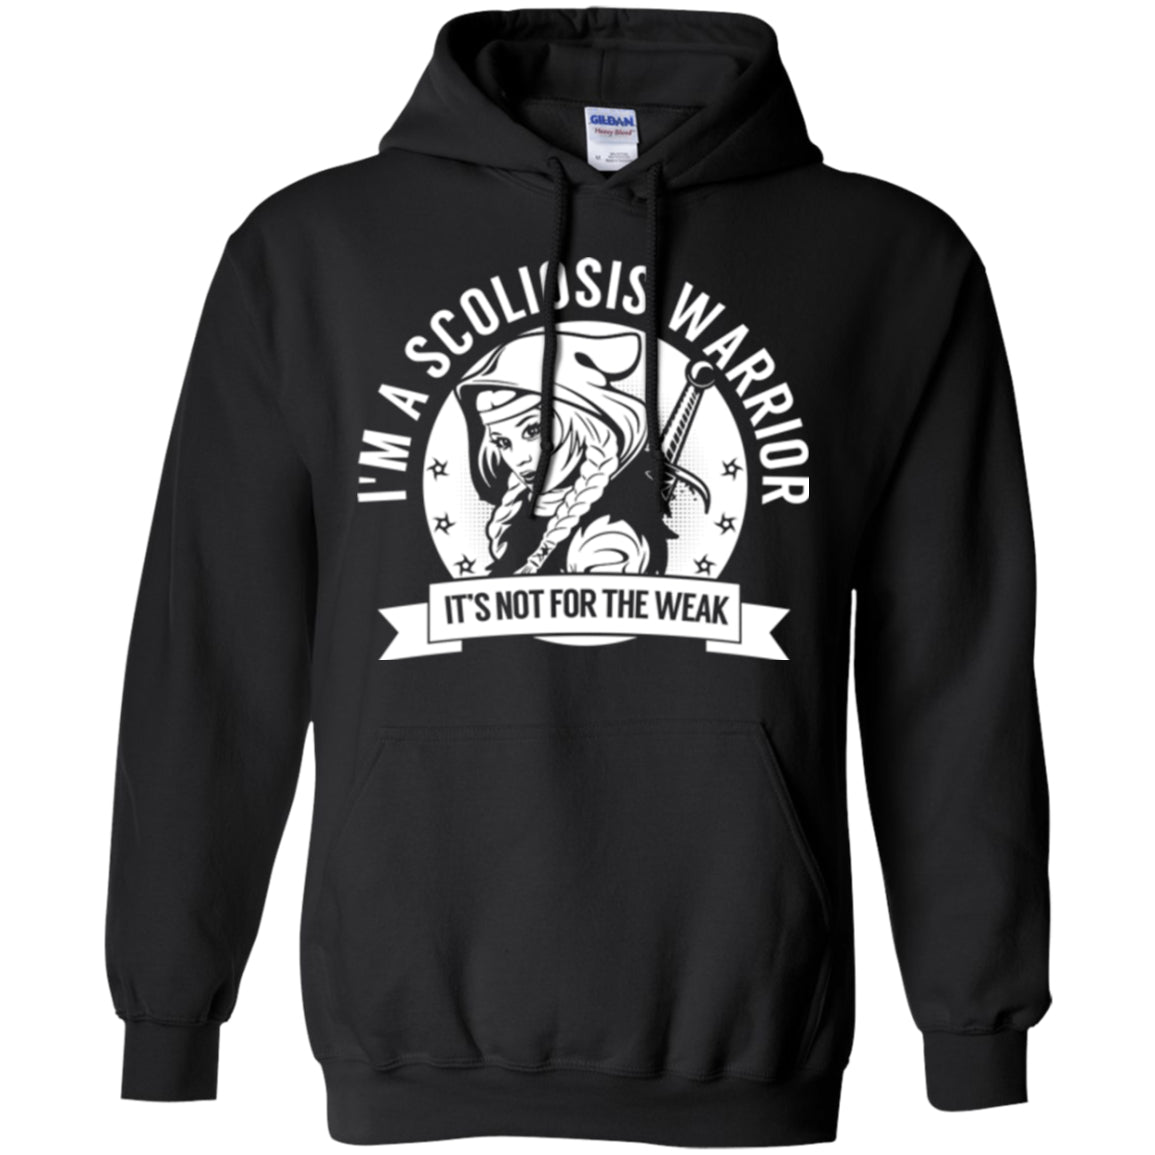 Scoliosis Warrior Hooded Pullover Hoodie 8 oz. - The Unchargeables